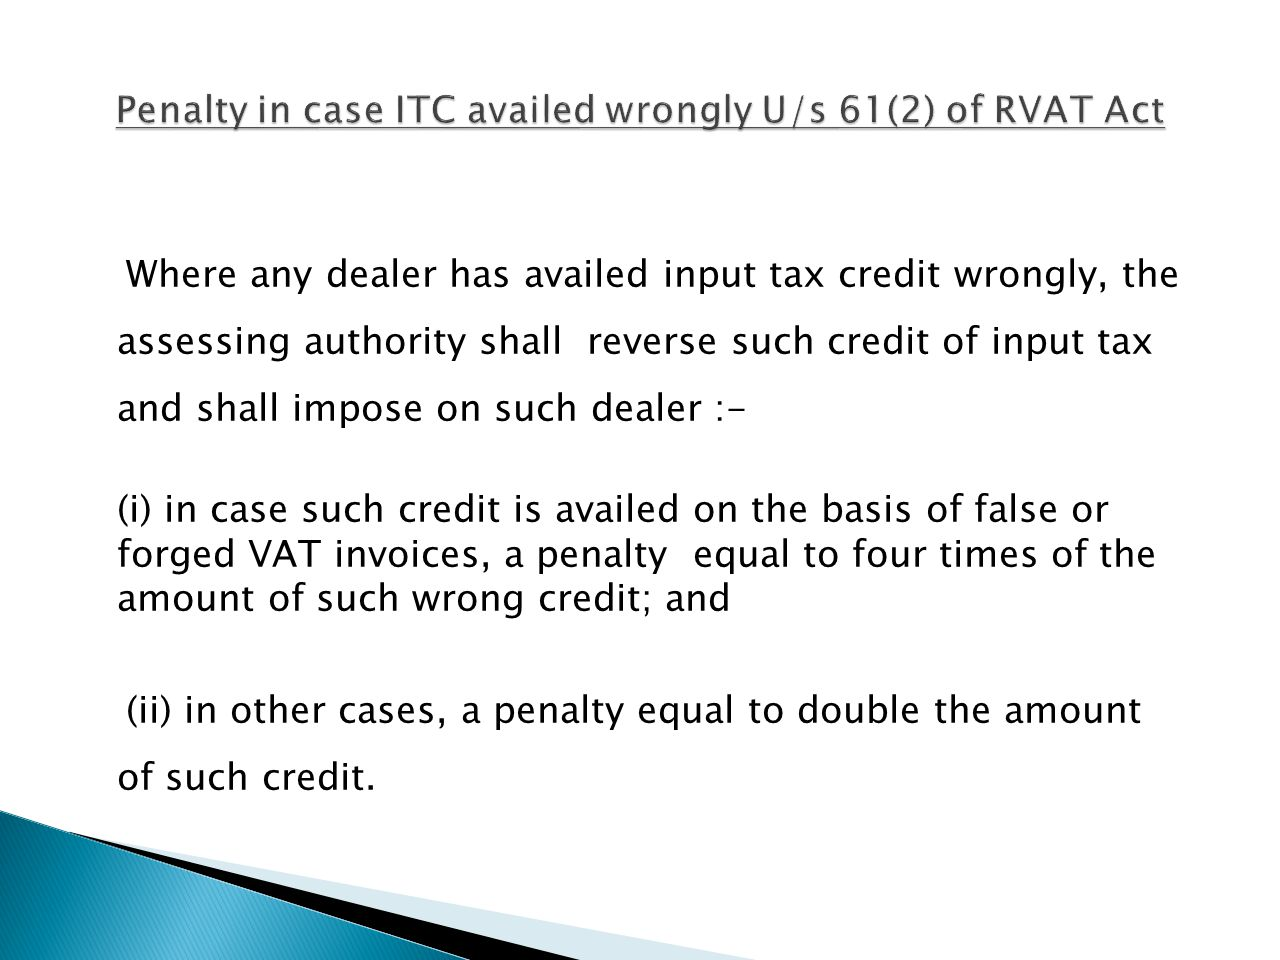 Penalty in case ITC availed wrongly U/s 61(2) of RVAT Act